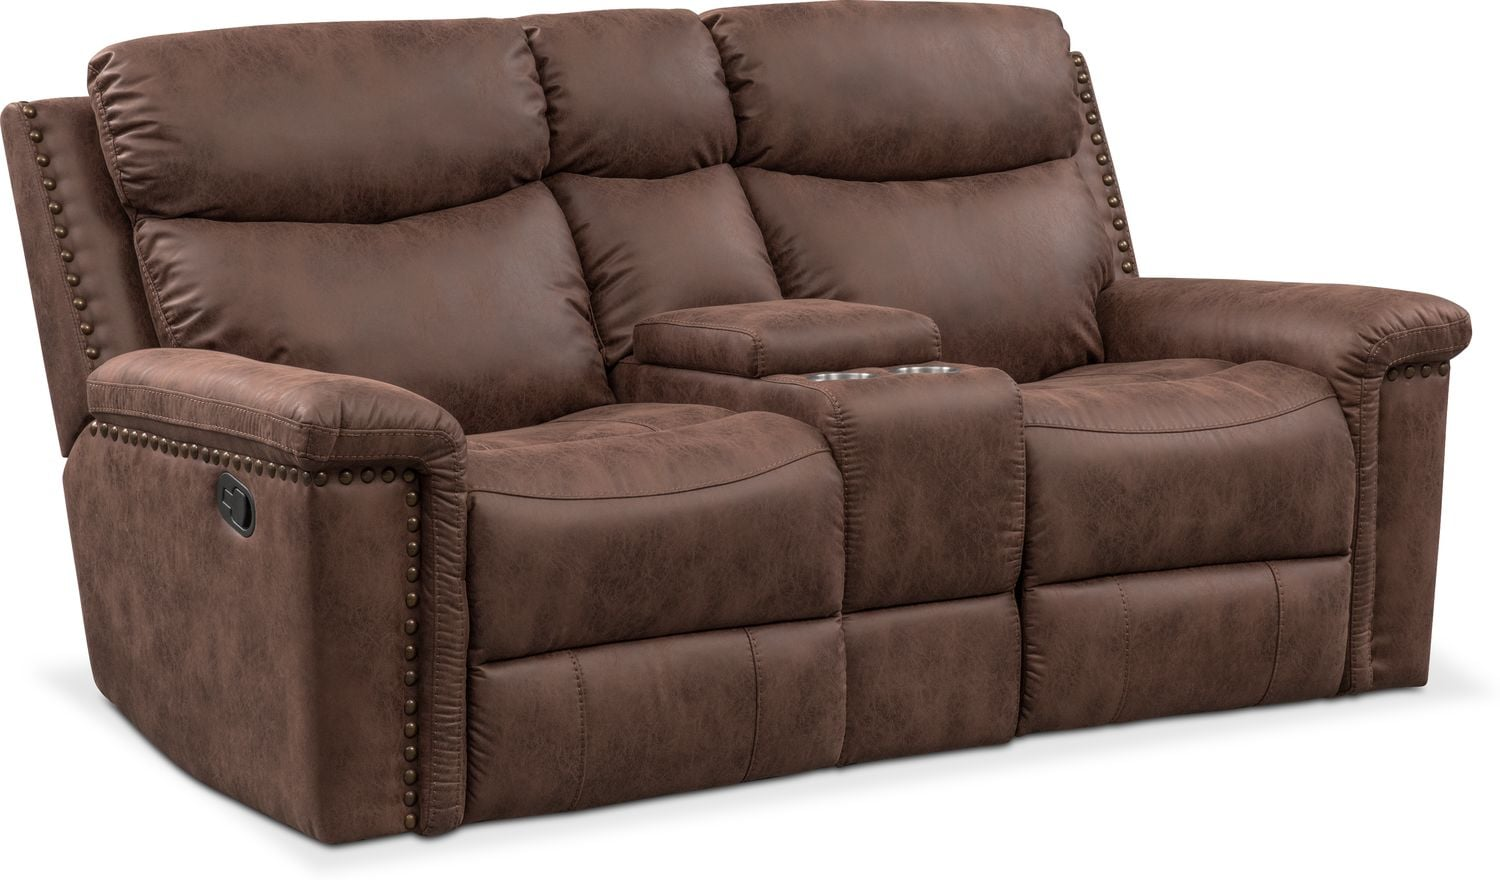 Living Room Furniture - Montana Manual Reclining Loveseat